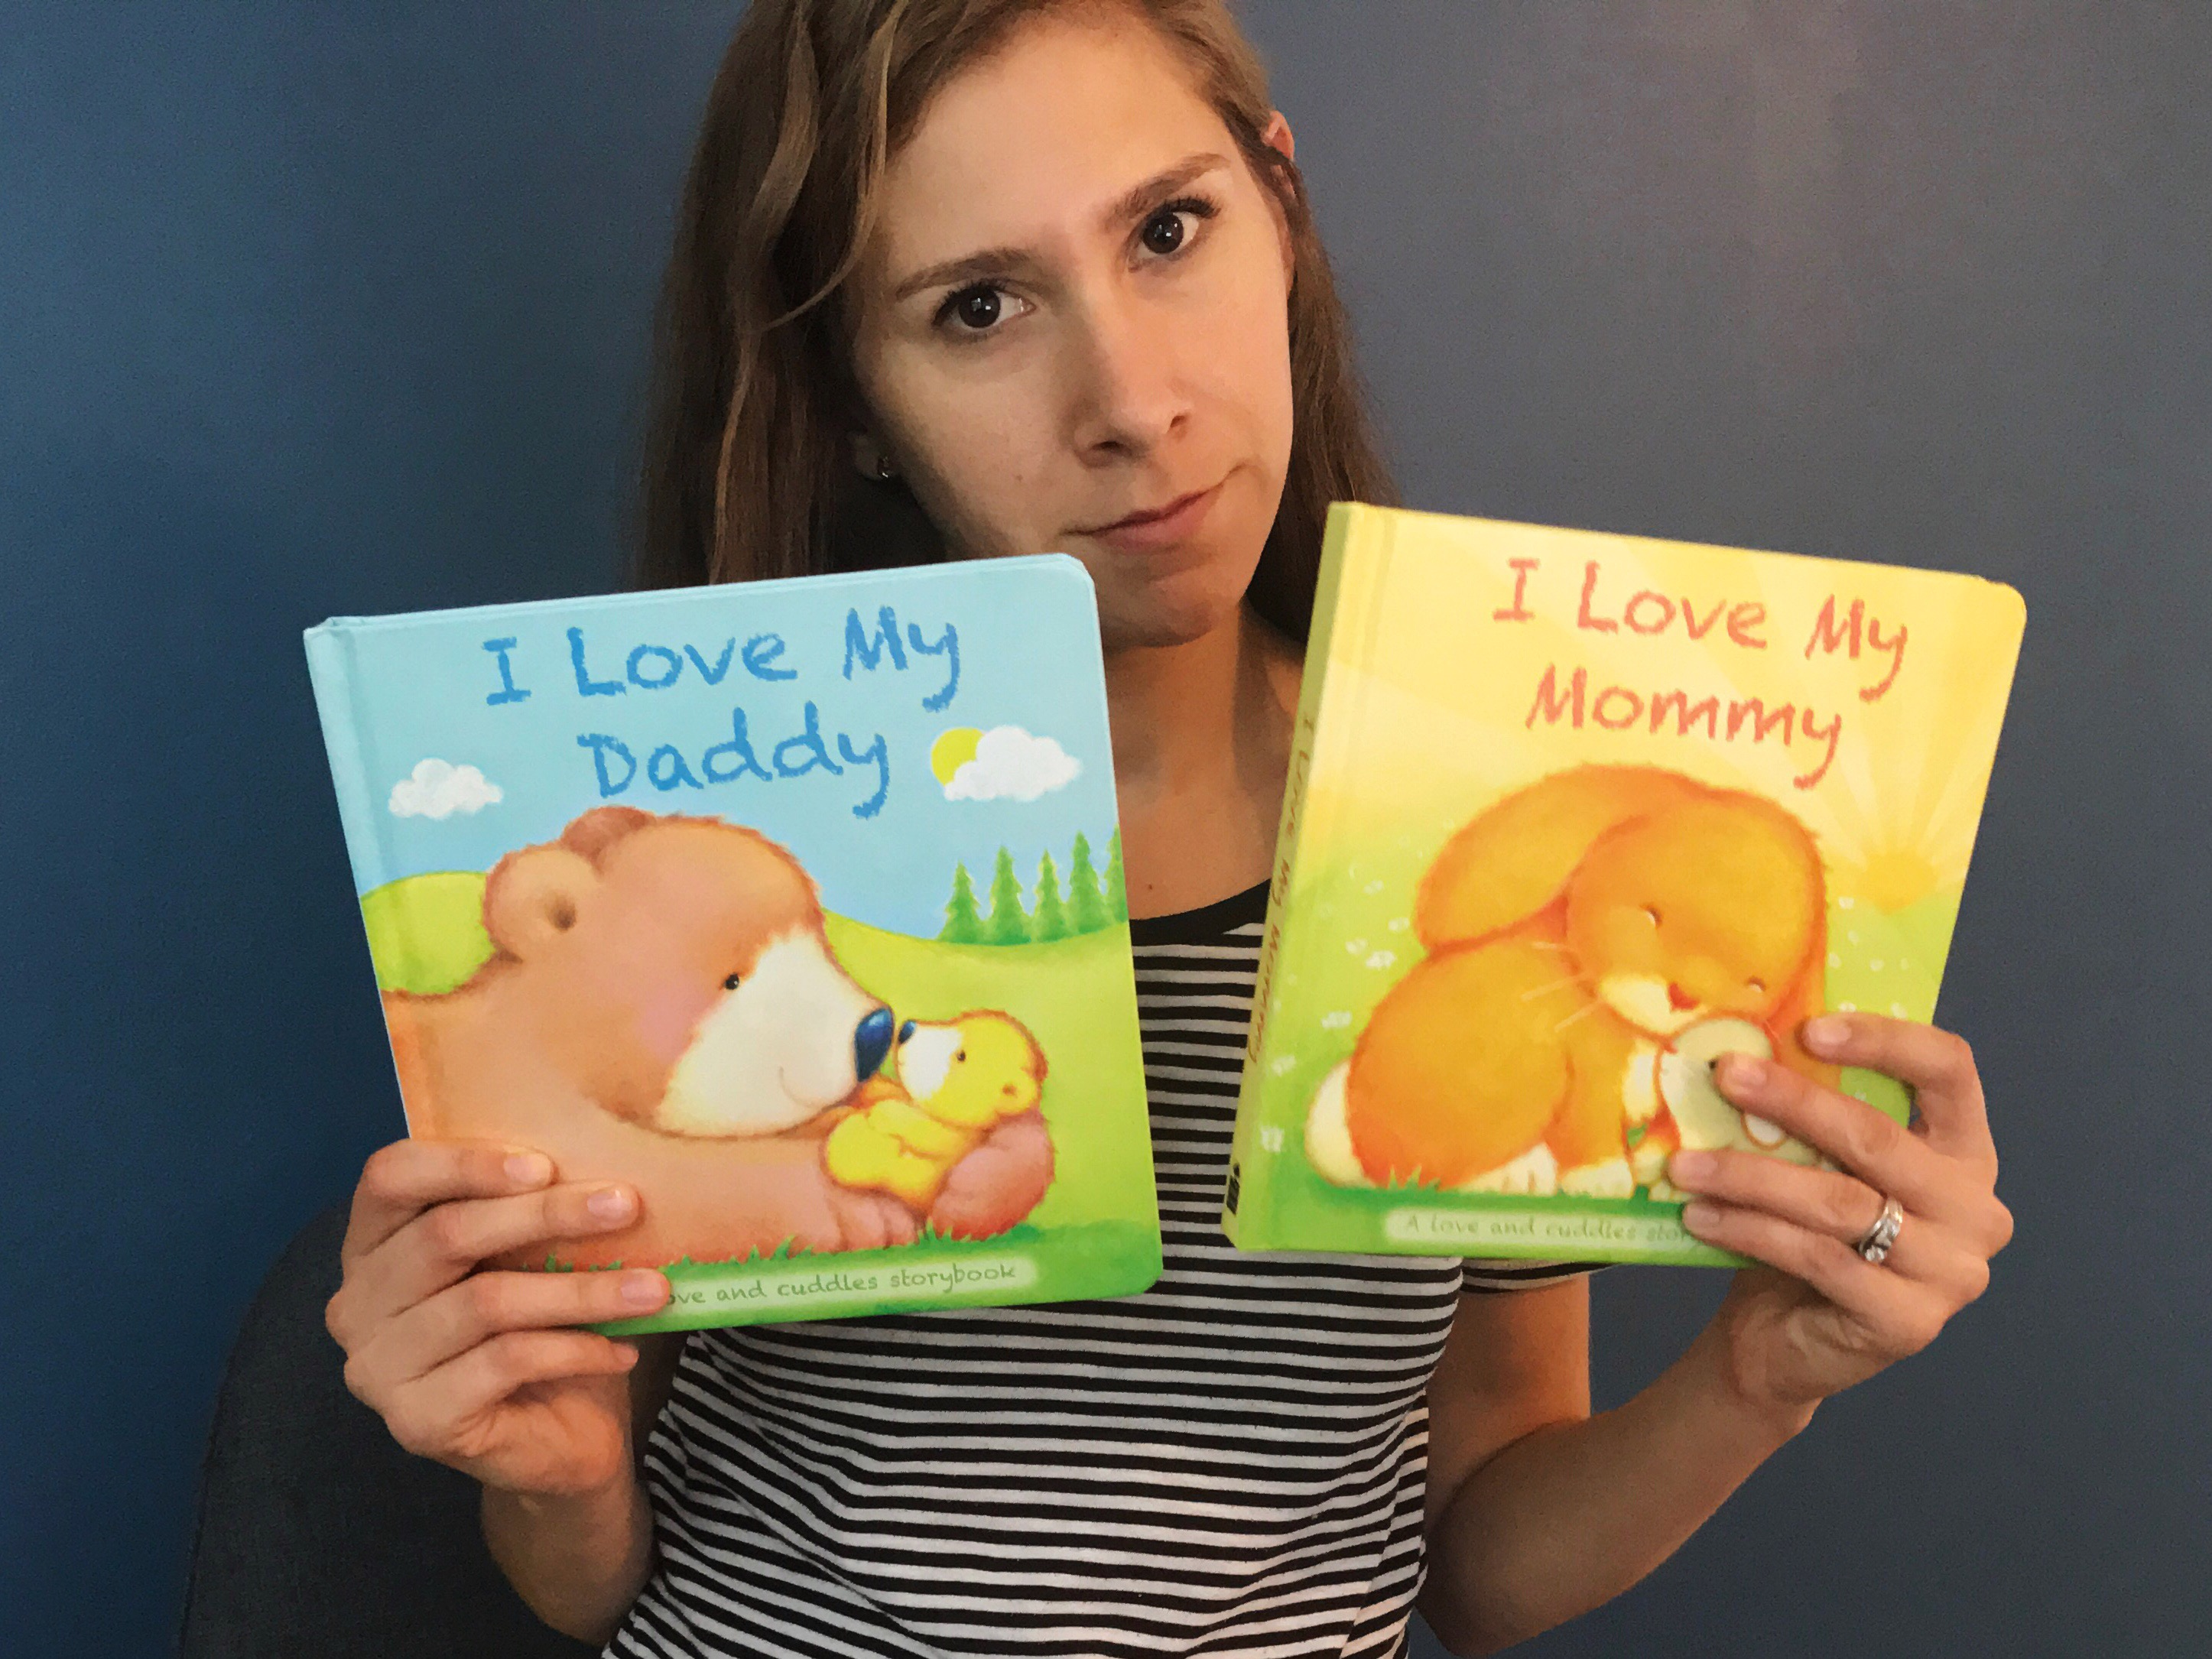 Value Modern Parenting Roles? Beware of these Two Deceitful Children's Books!